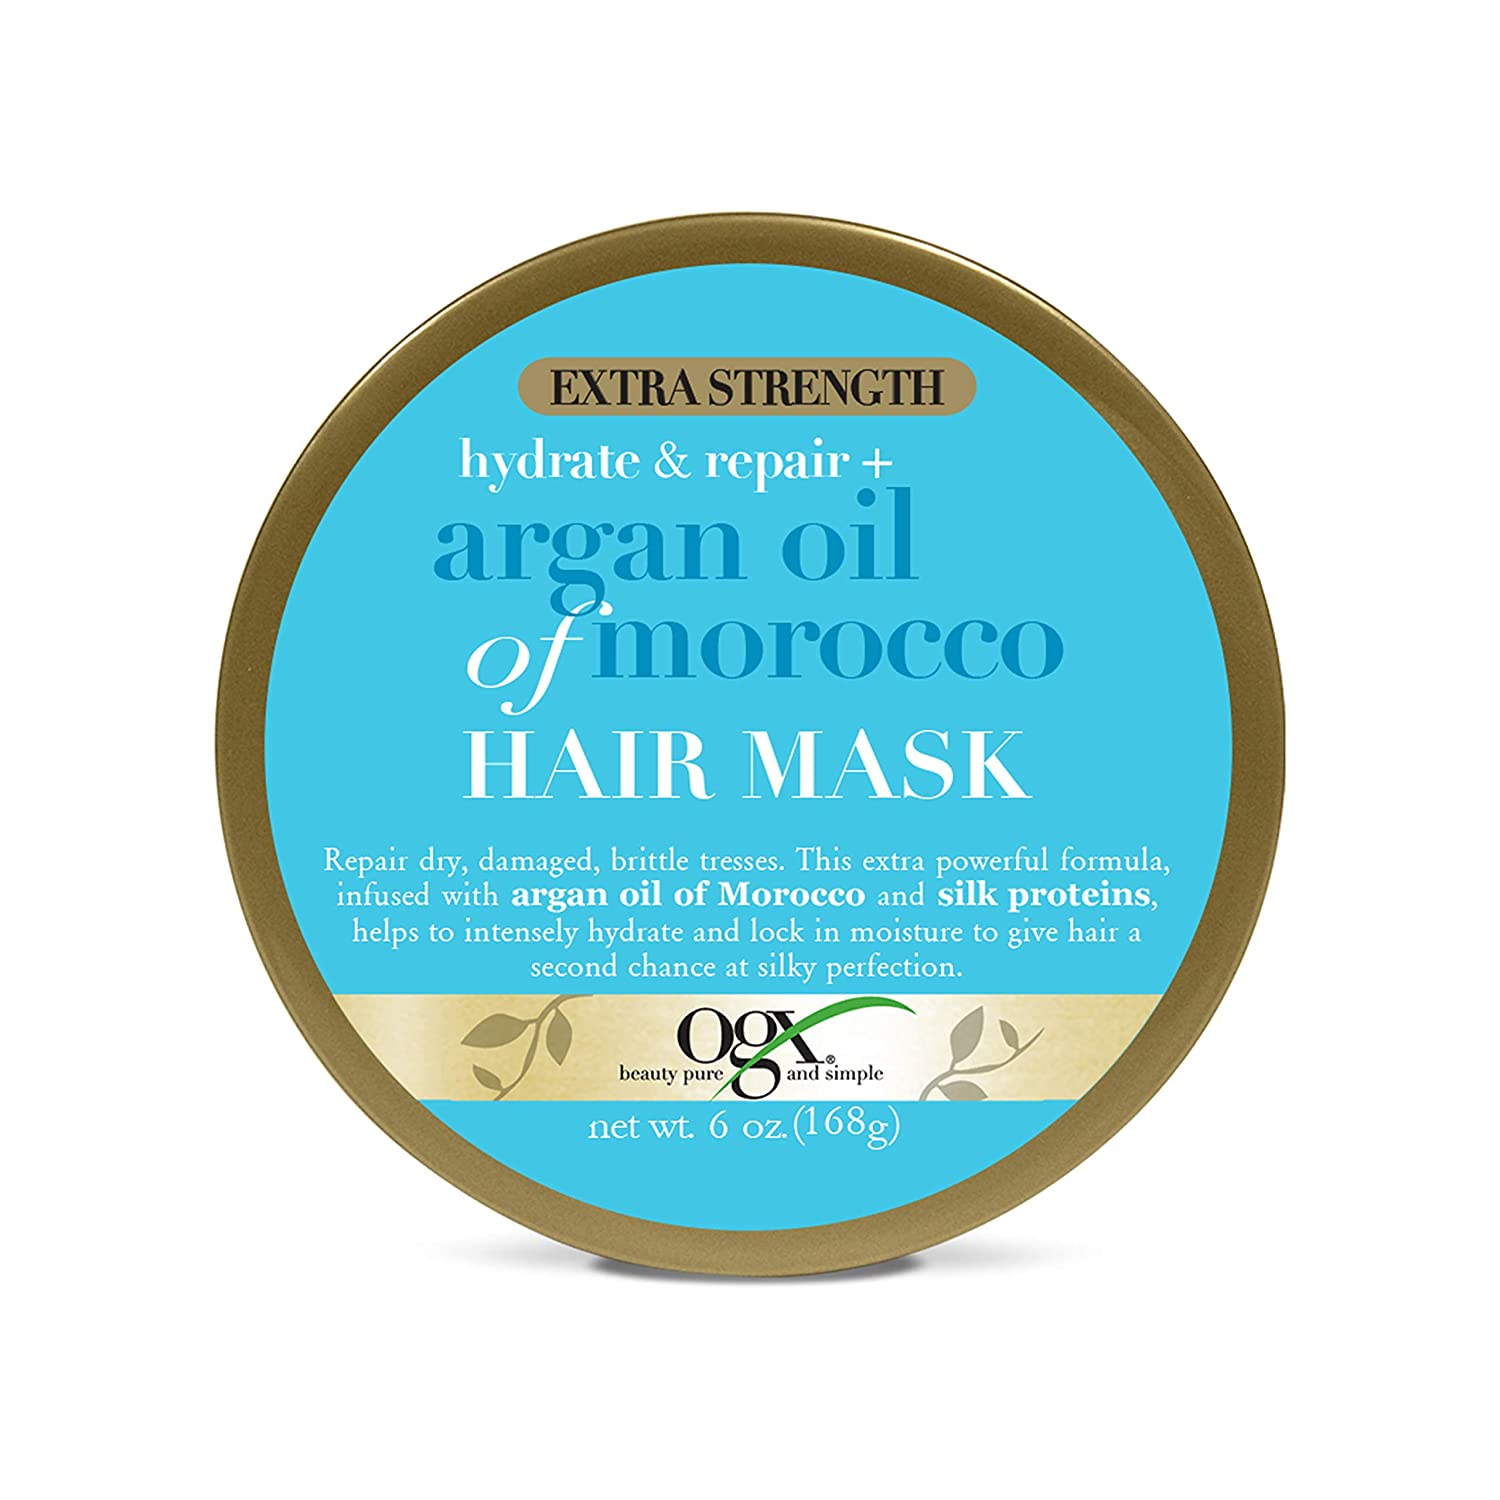 Ogx Extra Strength Argan Oil Of Morocco Hair Mask, 6 Oz